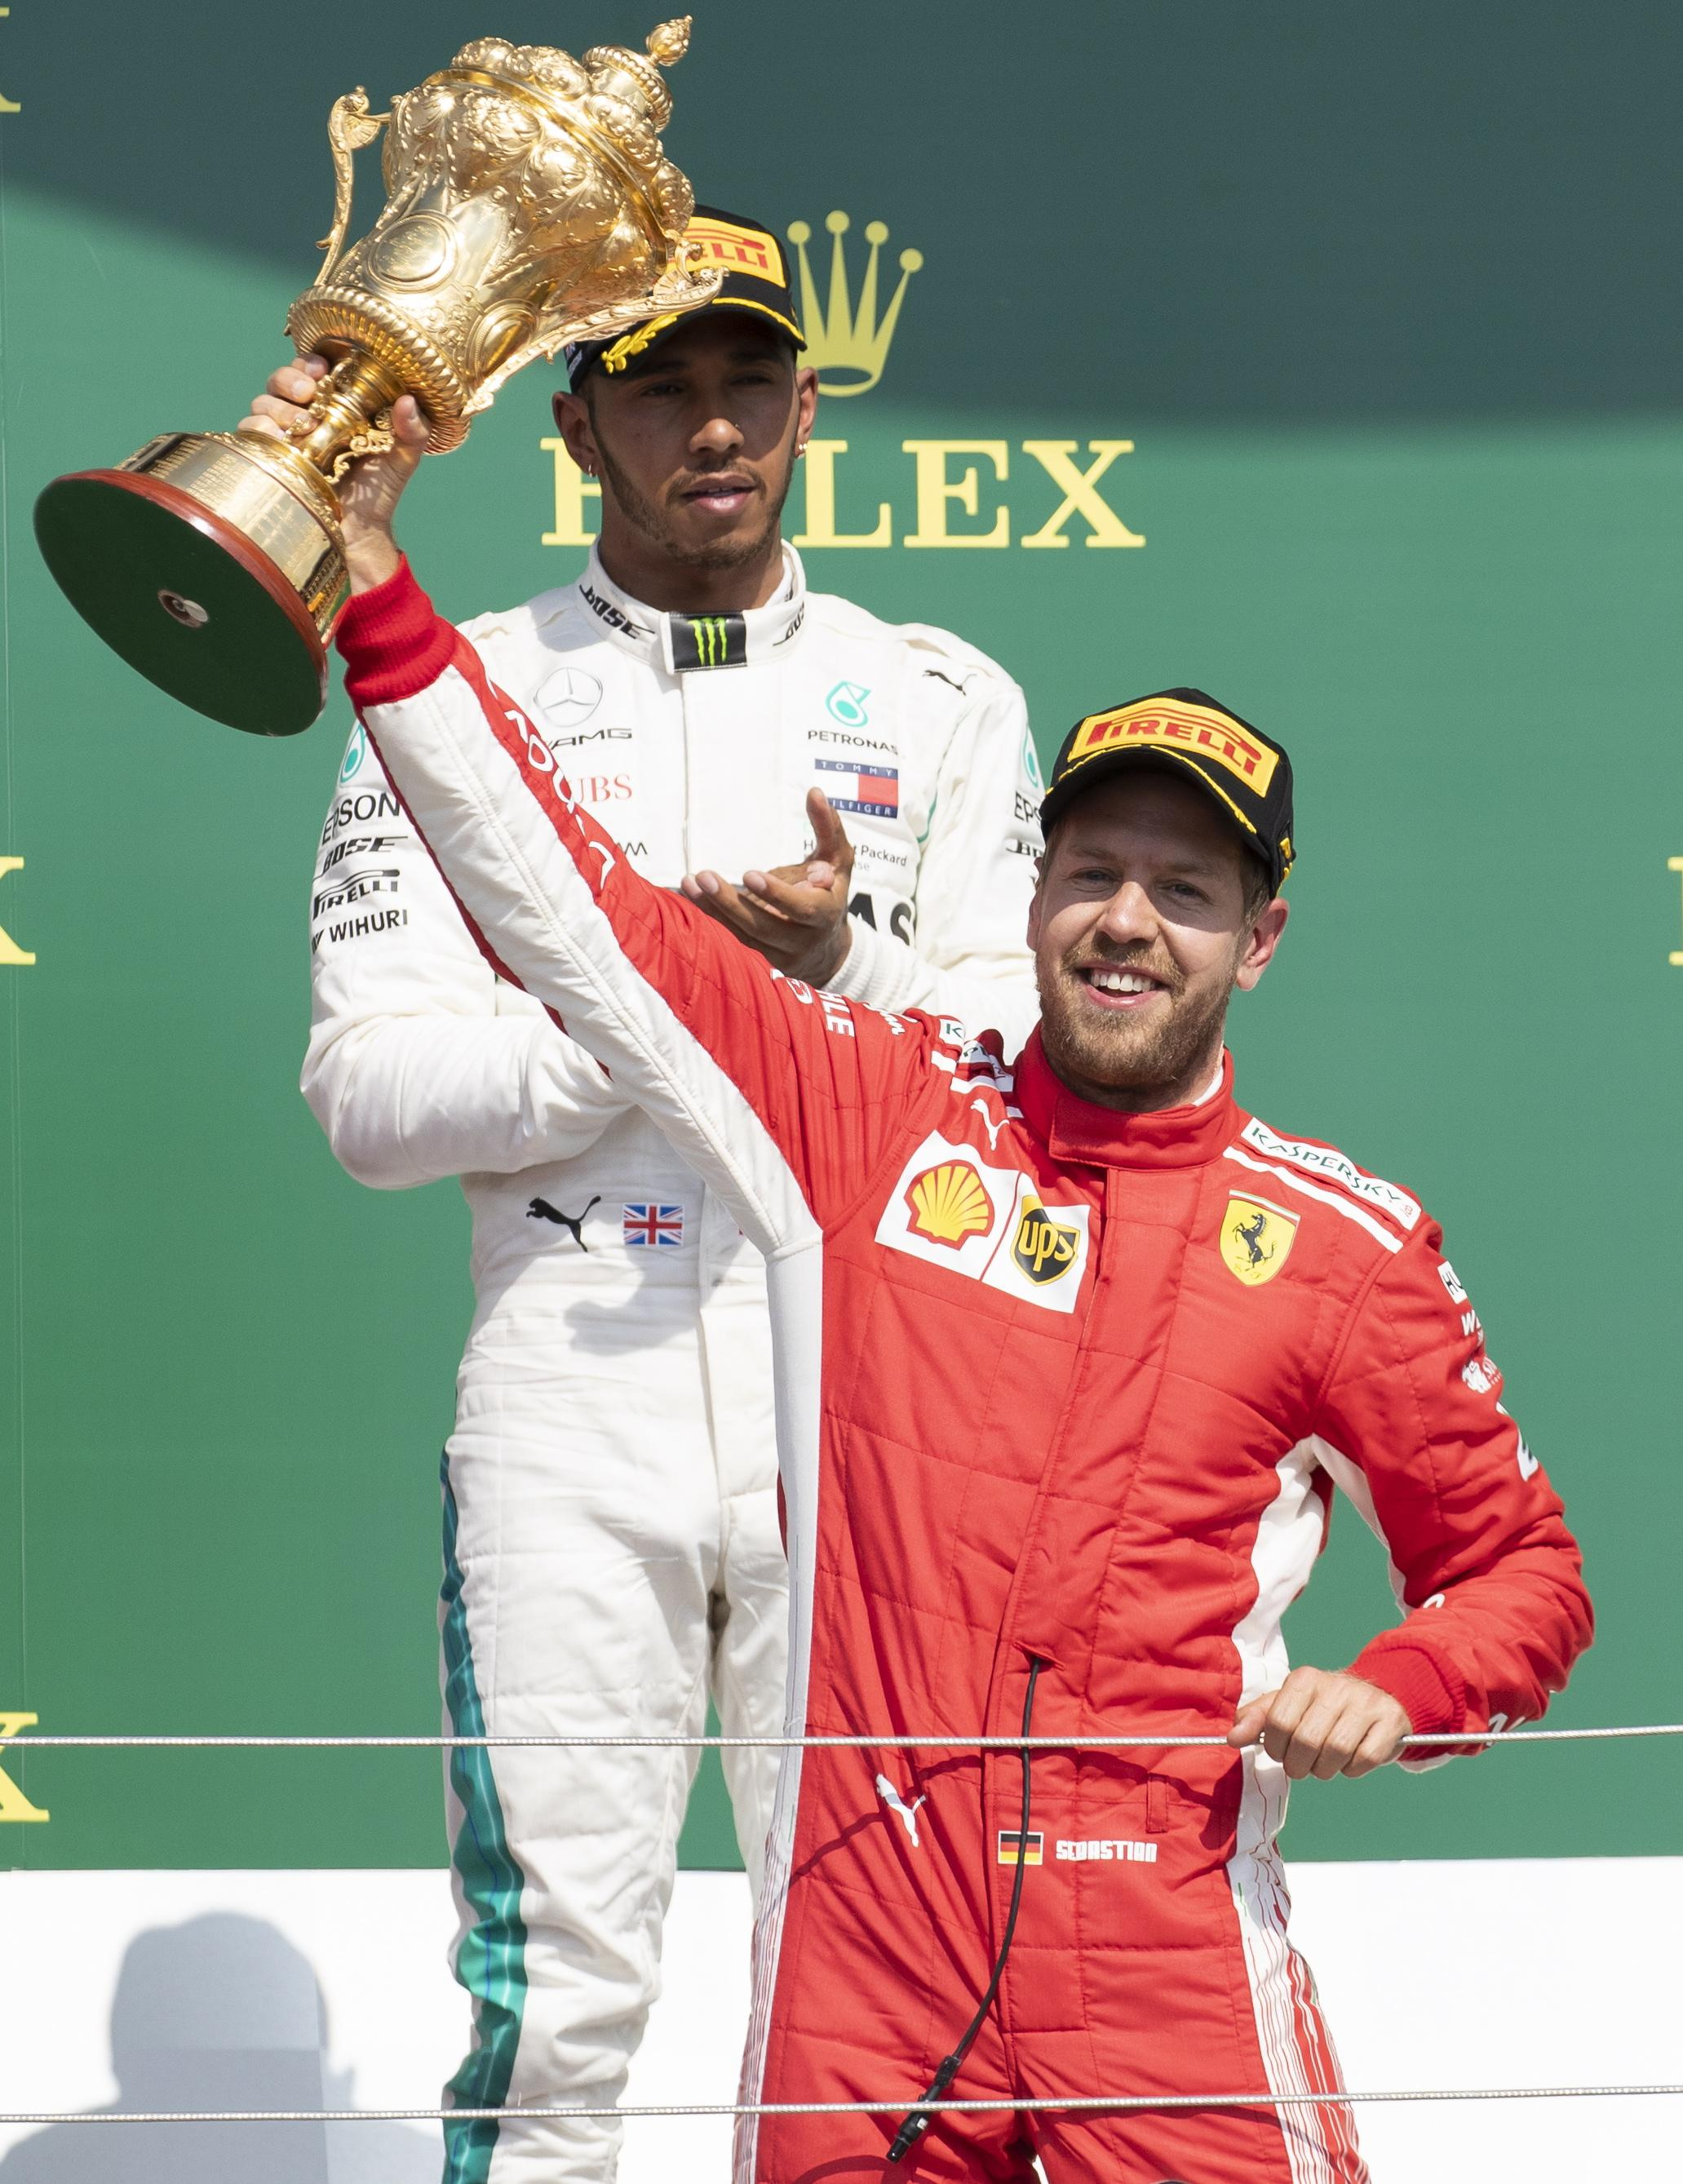 Sebastian Vettel lifts the British Grand Prix trophy in July 2018, nine years after his first victory at Silverstone